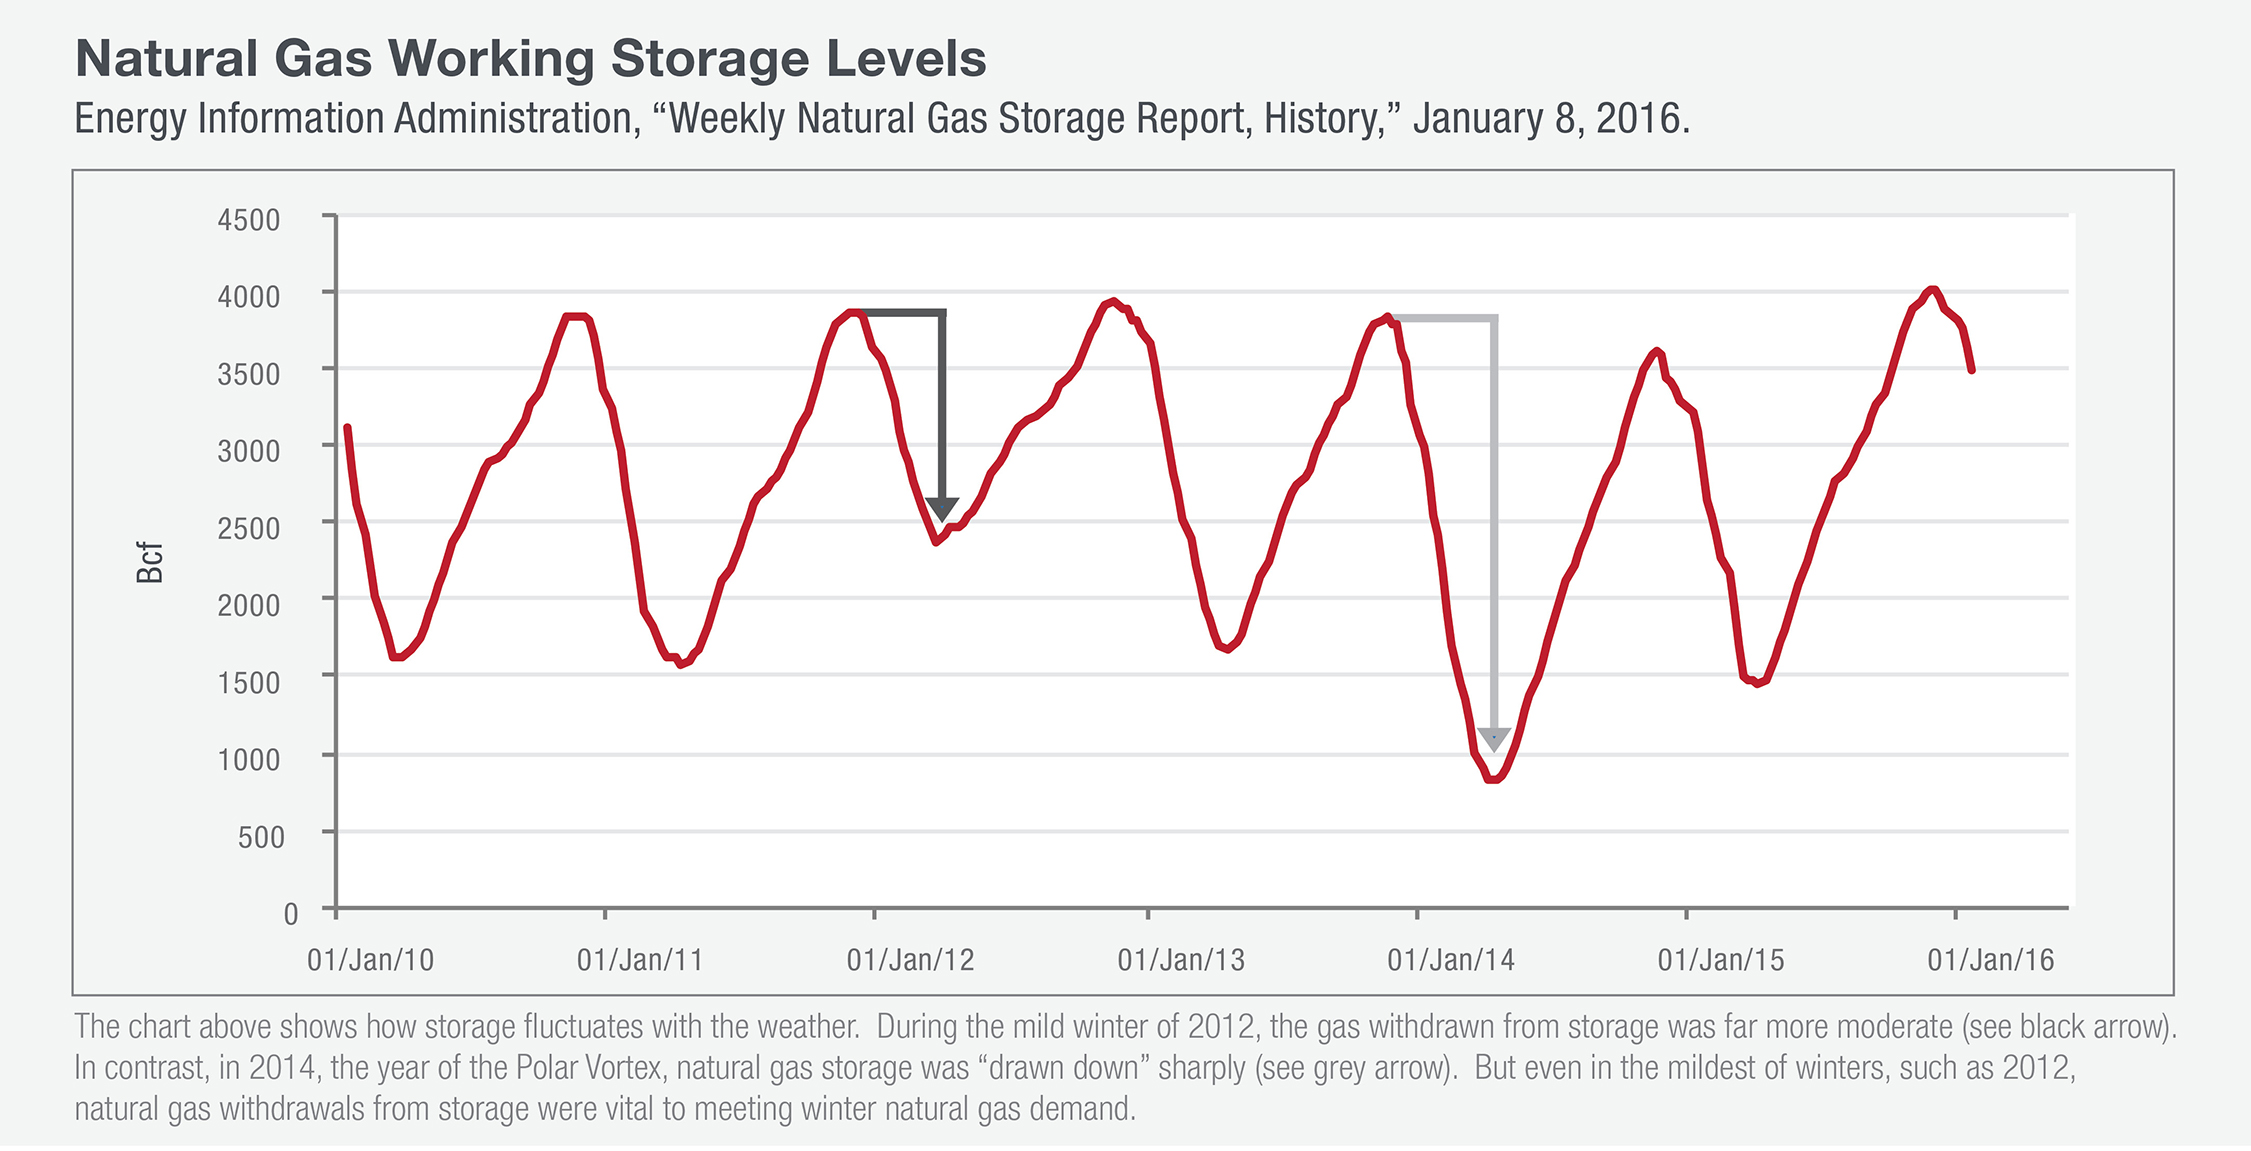 This graph shows natural gas working storage levels